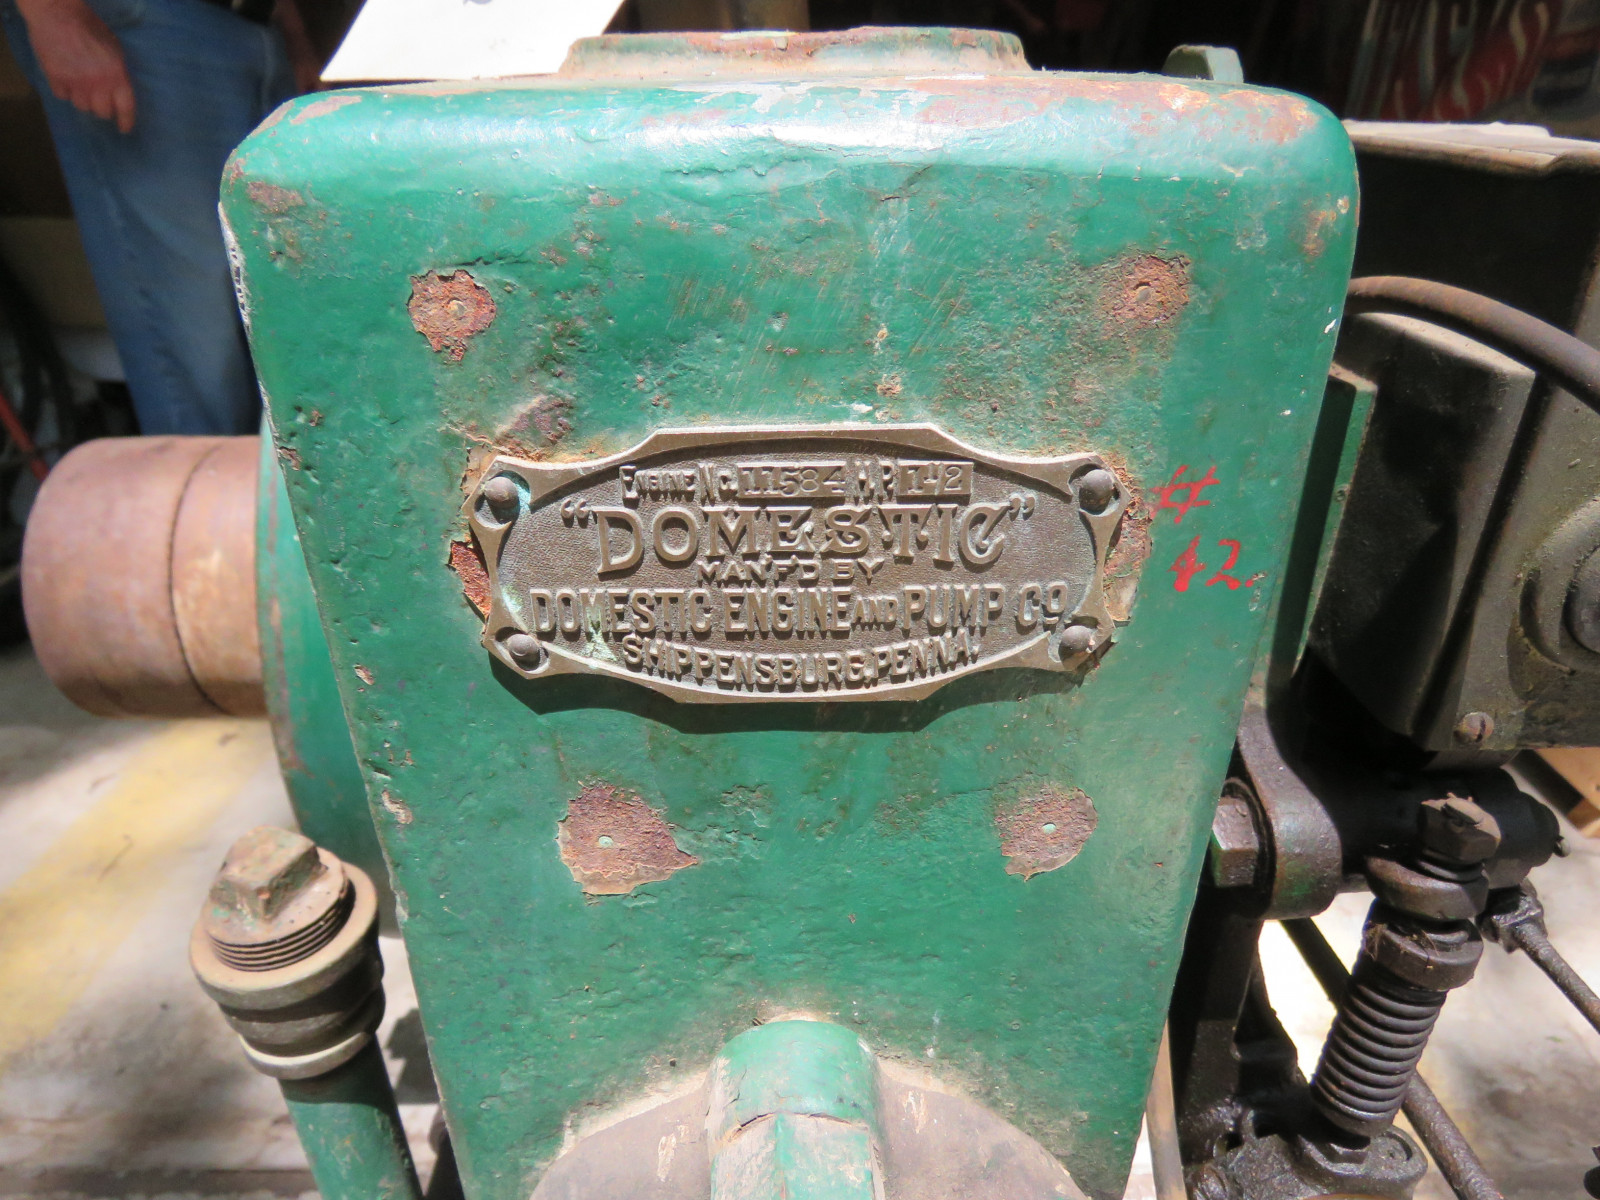 Domestic Side Shaft 1 1/2HP Stationary Gas Engine on Cart - Image 4